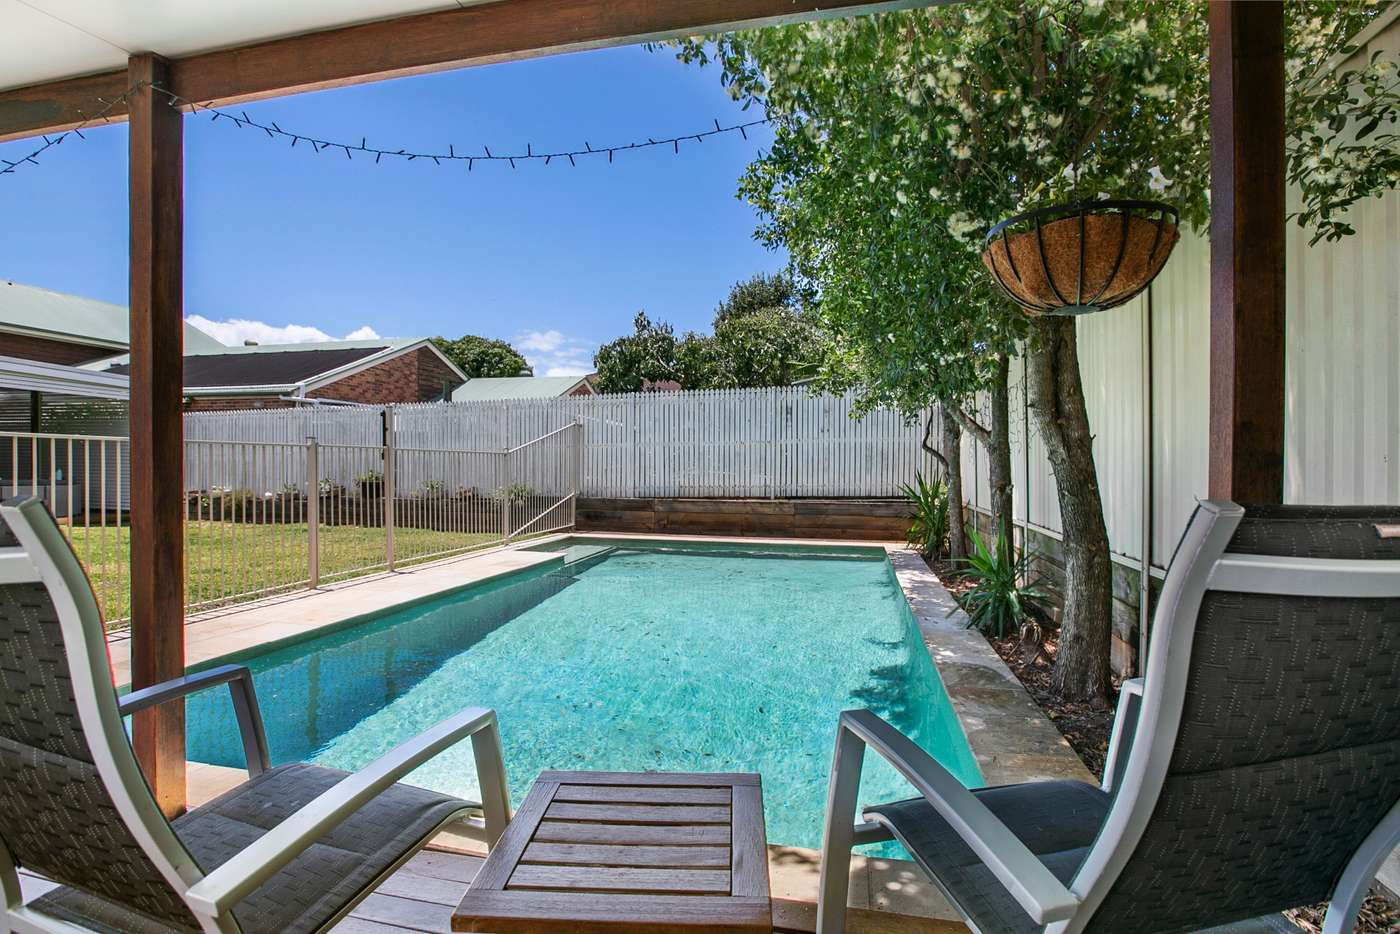 Main view of Homely house listing, 3 Tonita Court, Birkdale QLD 4159